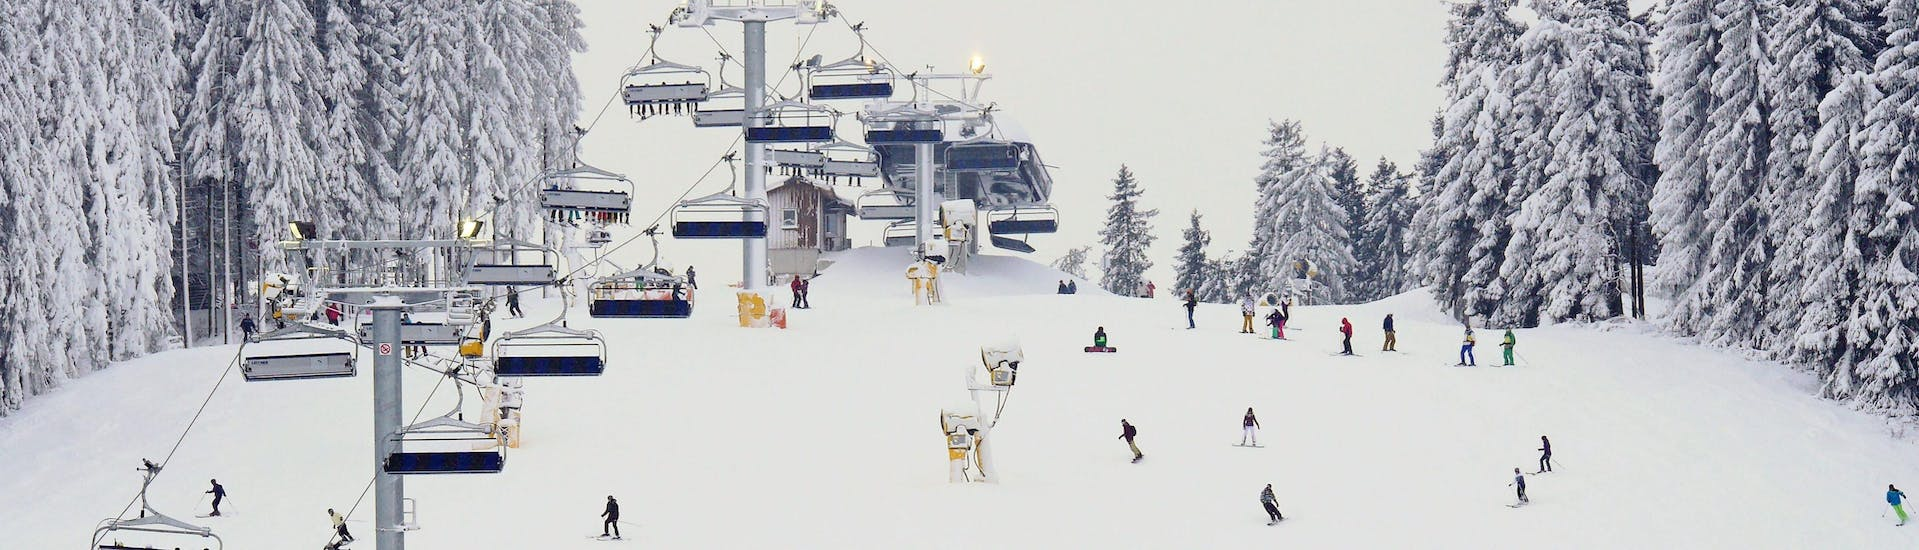 An image of skiers and snowboarders enjoying theimselves on the ski slope in Winterberg, where local ski schools offer a range of ski lessons to visitors who want to learn to ski.